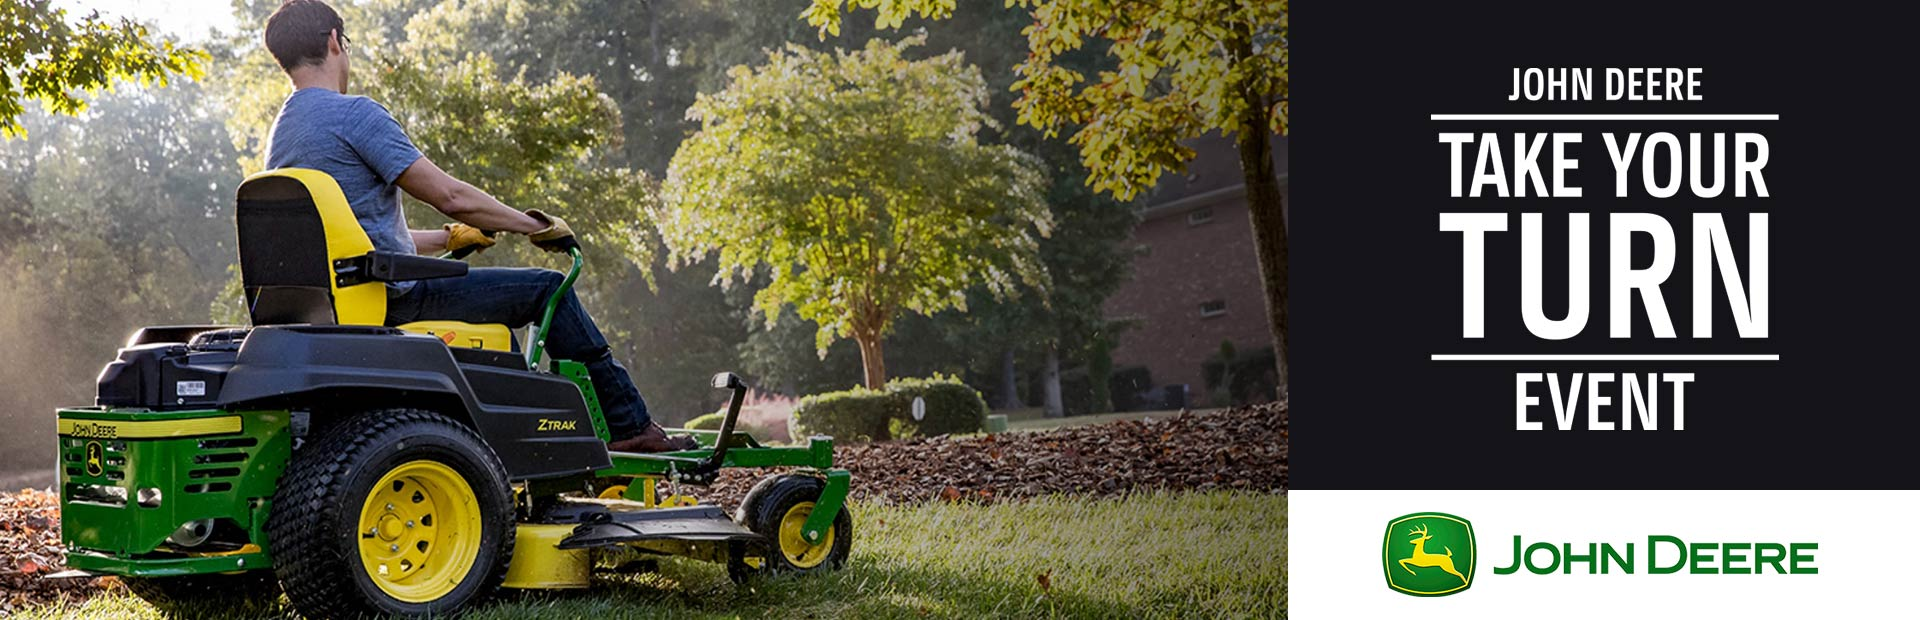 John Deere: Take Your Turn Event